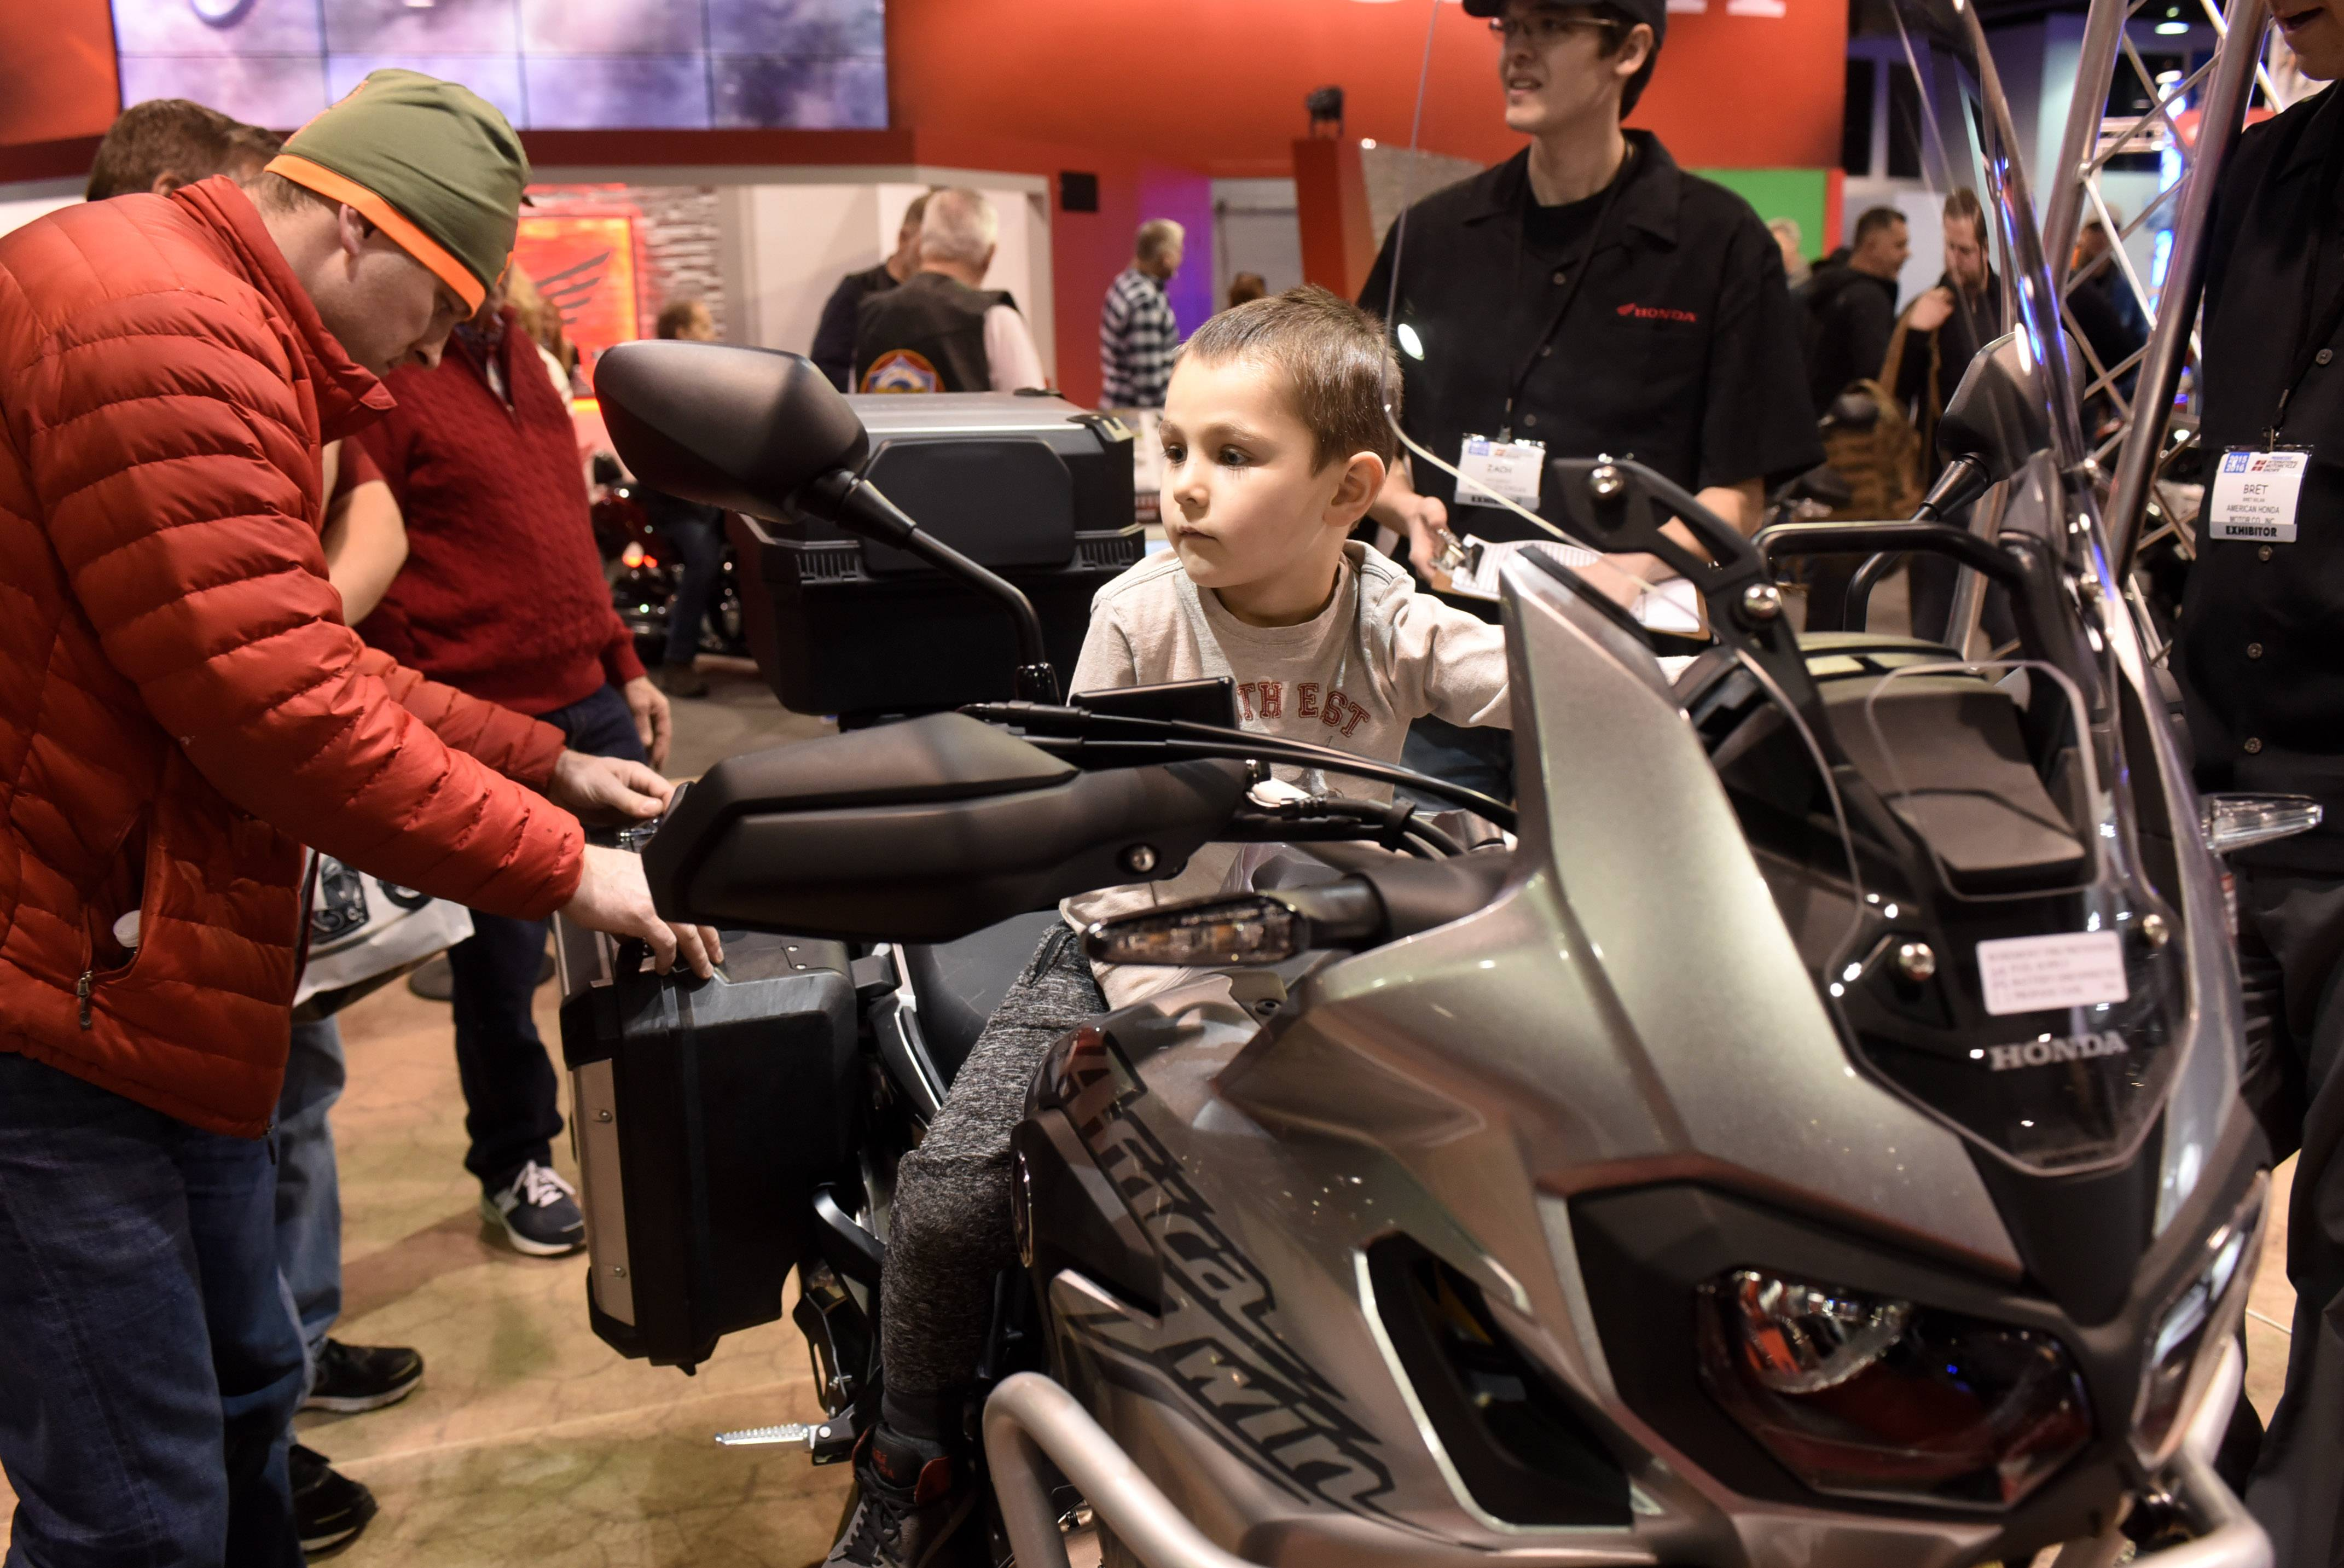 Dreams of buying a new bike can make a grown man feel like a kid again, as witnessed by shoppers at the 2016 Progressive International Motorcycle Show at the Donald Stephens Convention Center in Rosemont.